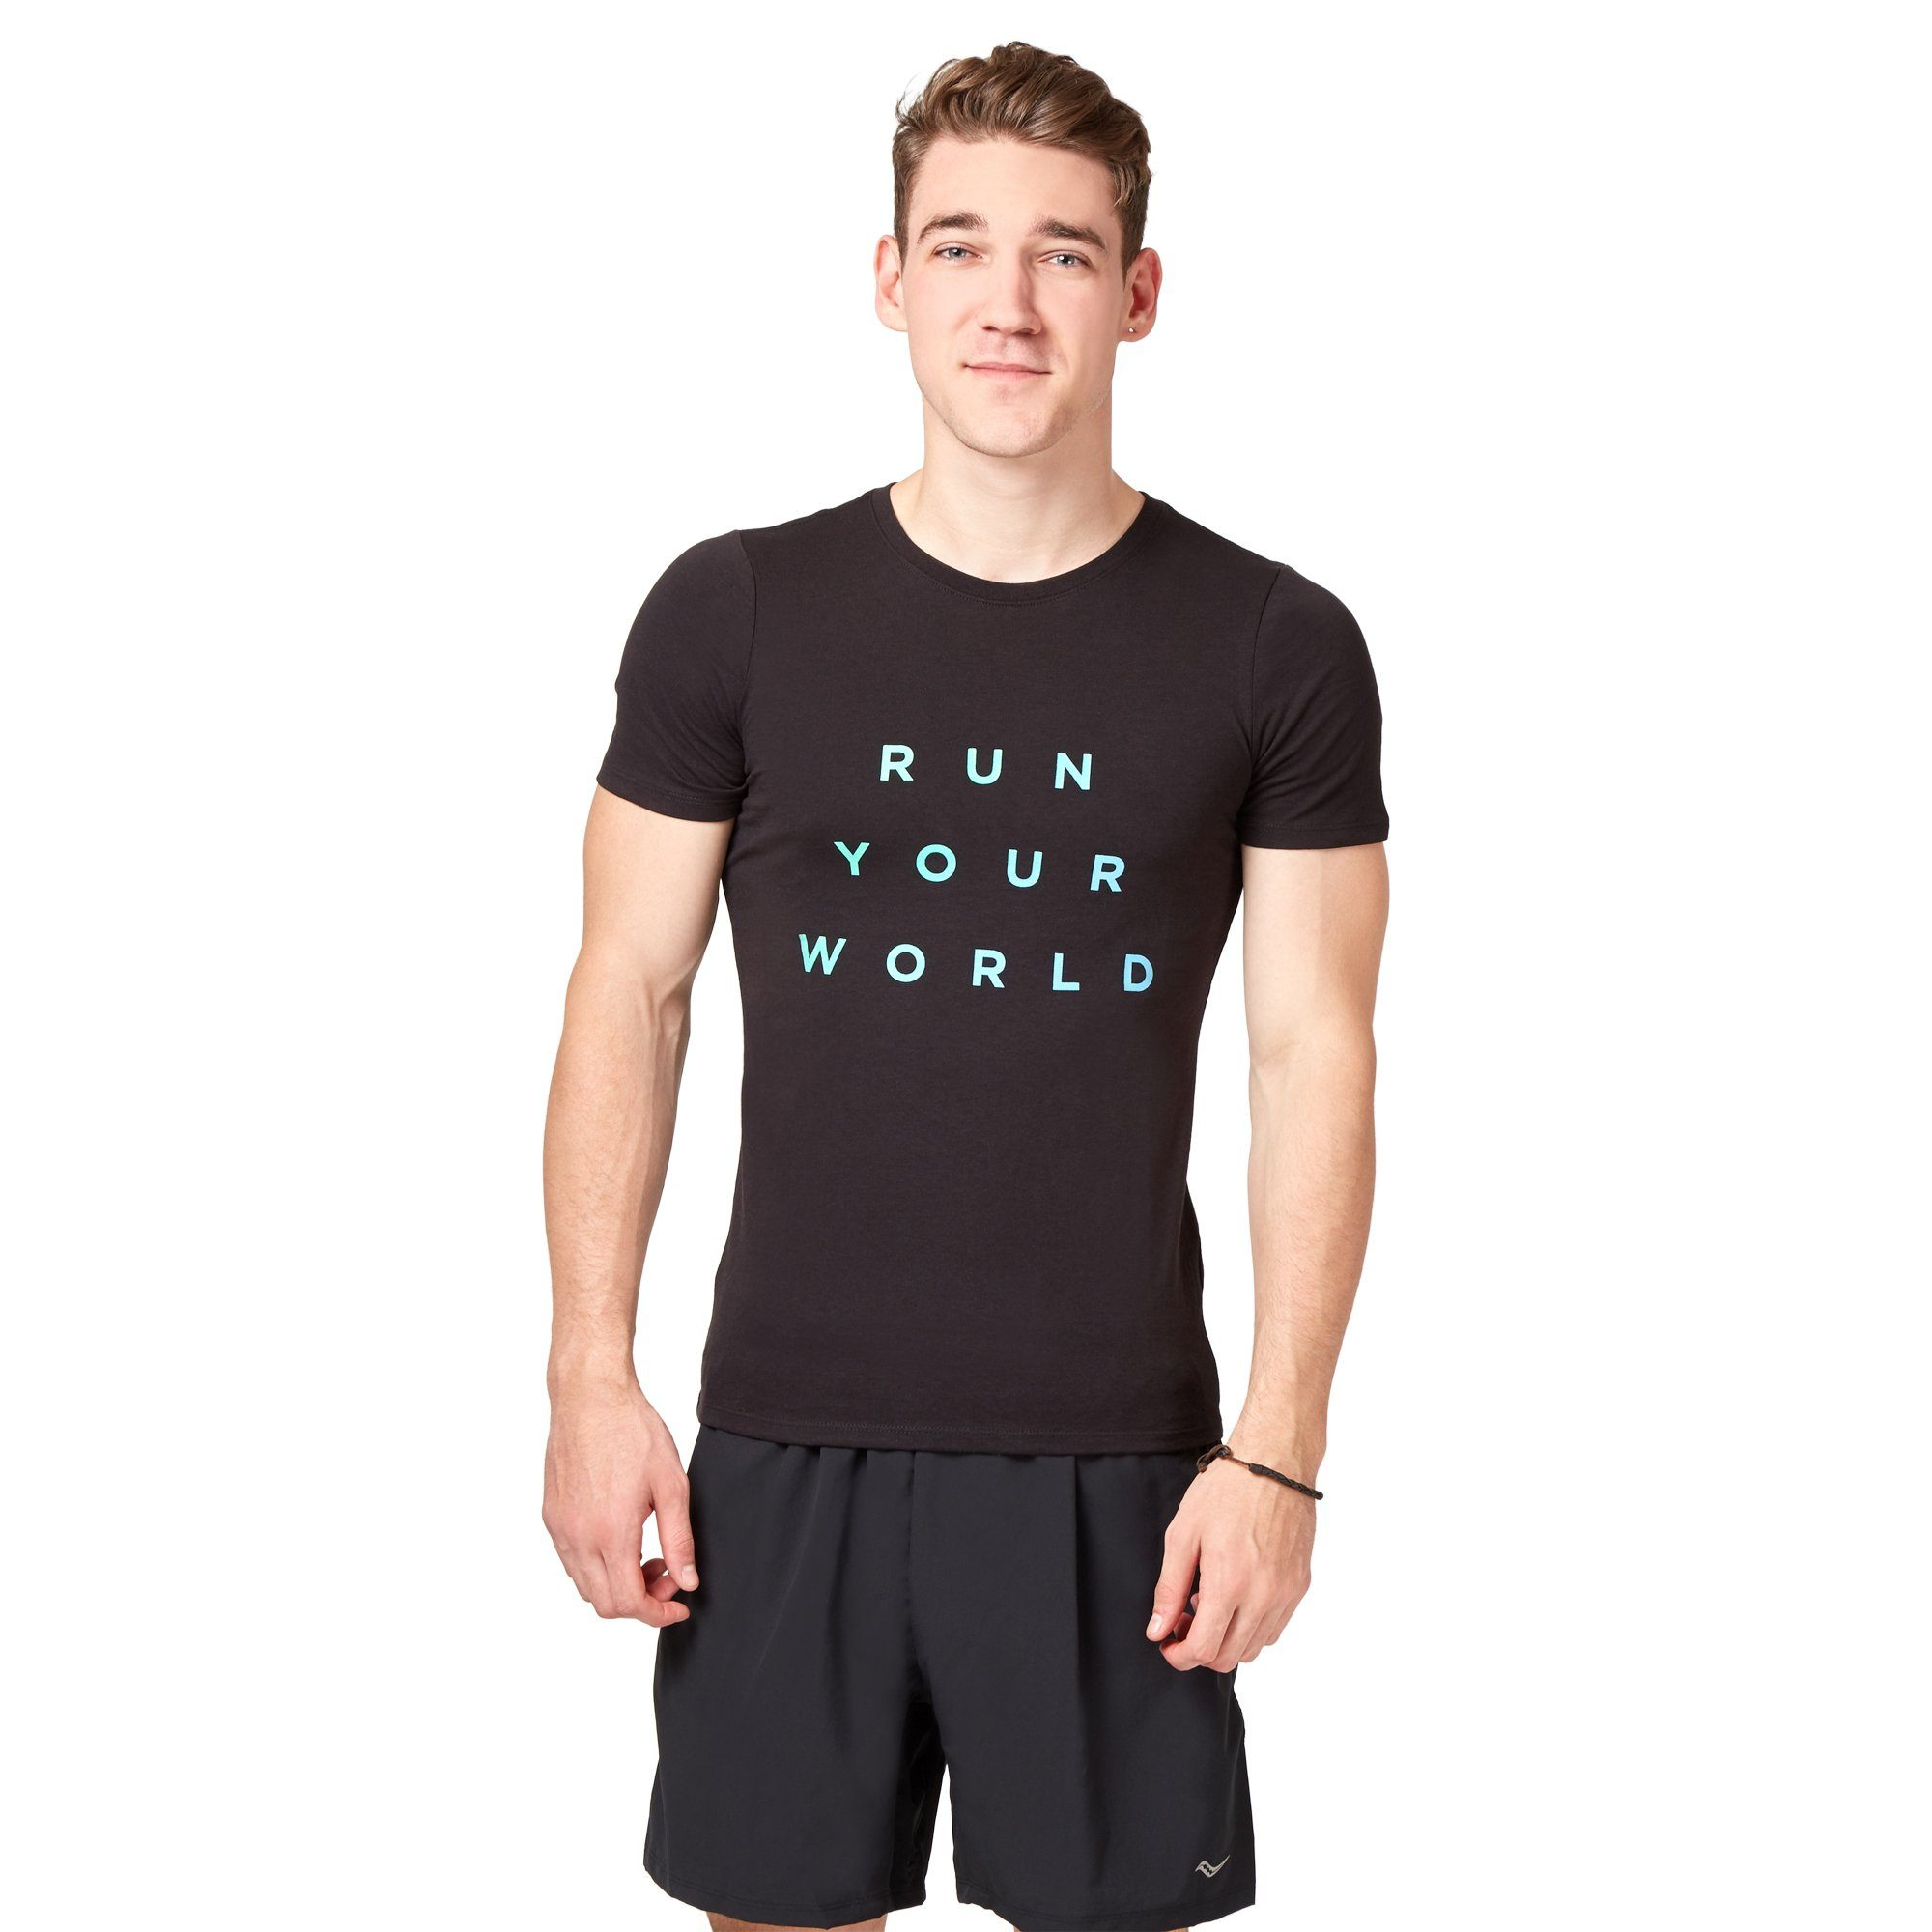 Saucony Run Your World Men's GA Tee - Black Apparel Saucony